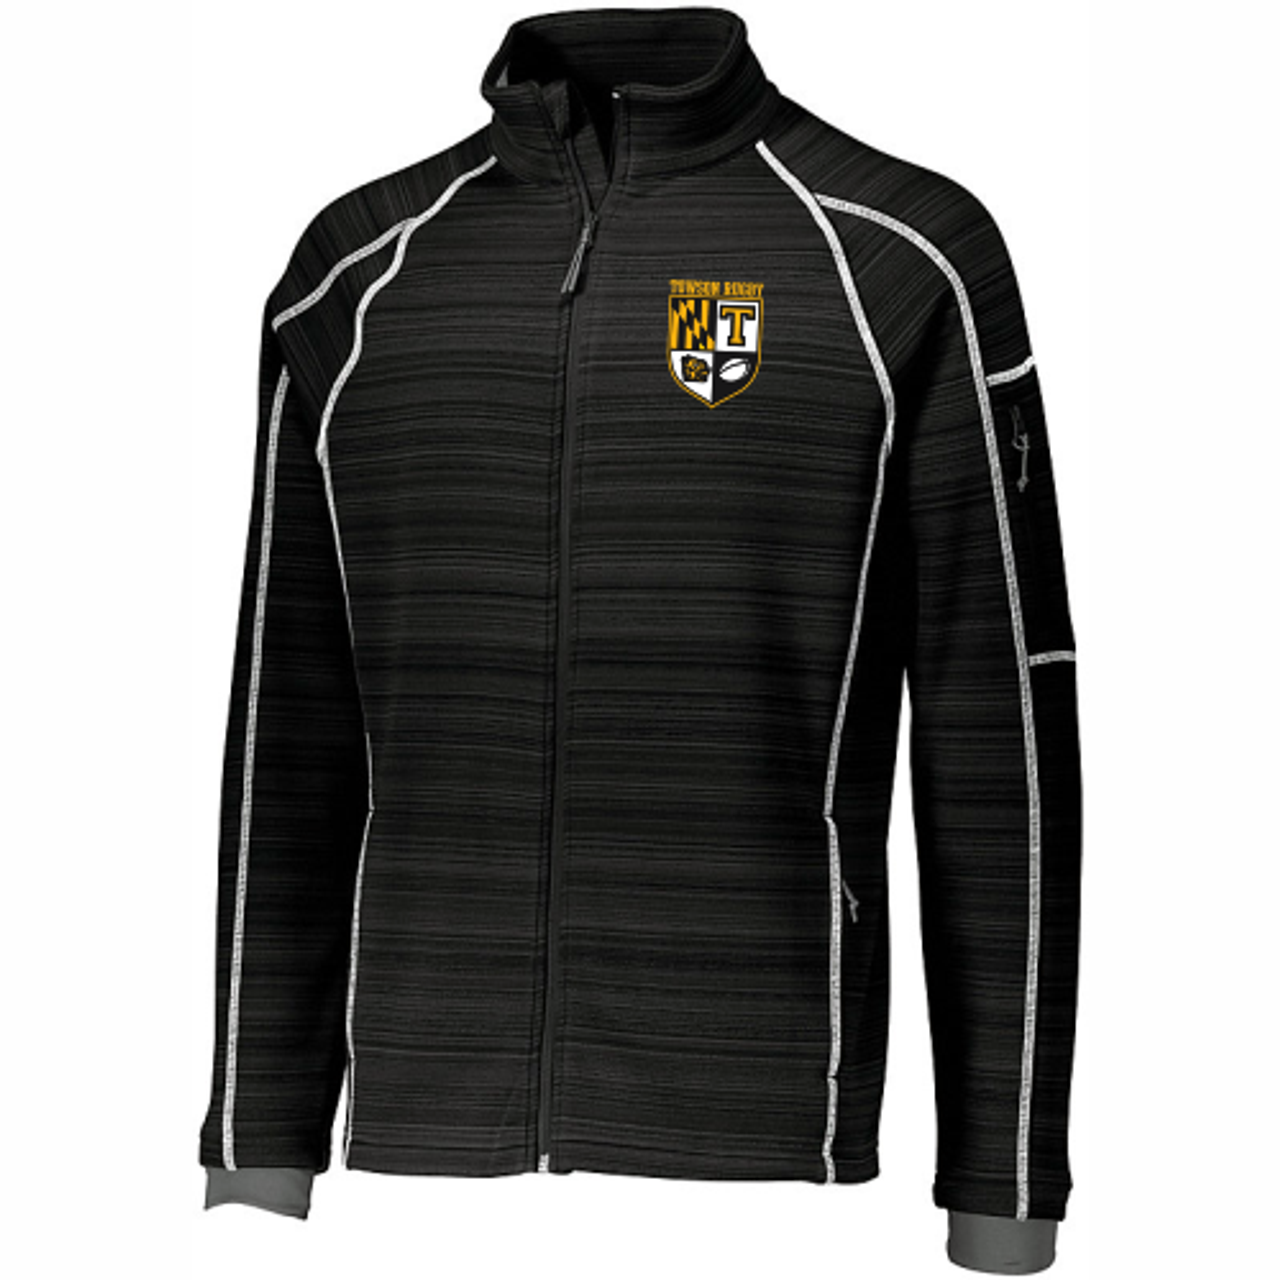 Towson Rugby Full-Zip Poly Fleece Jacket